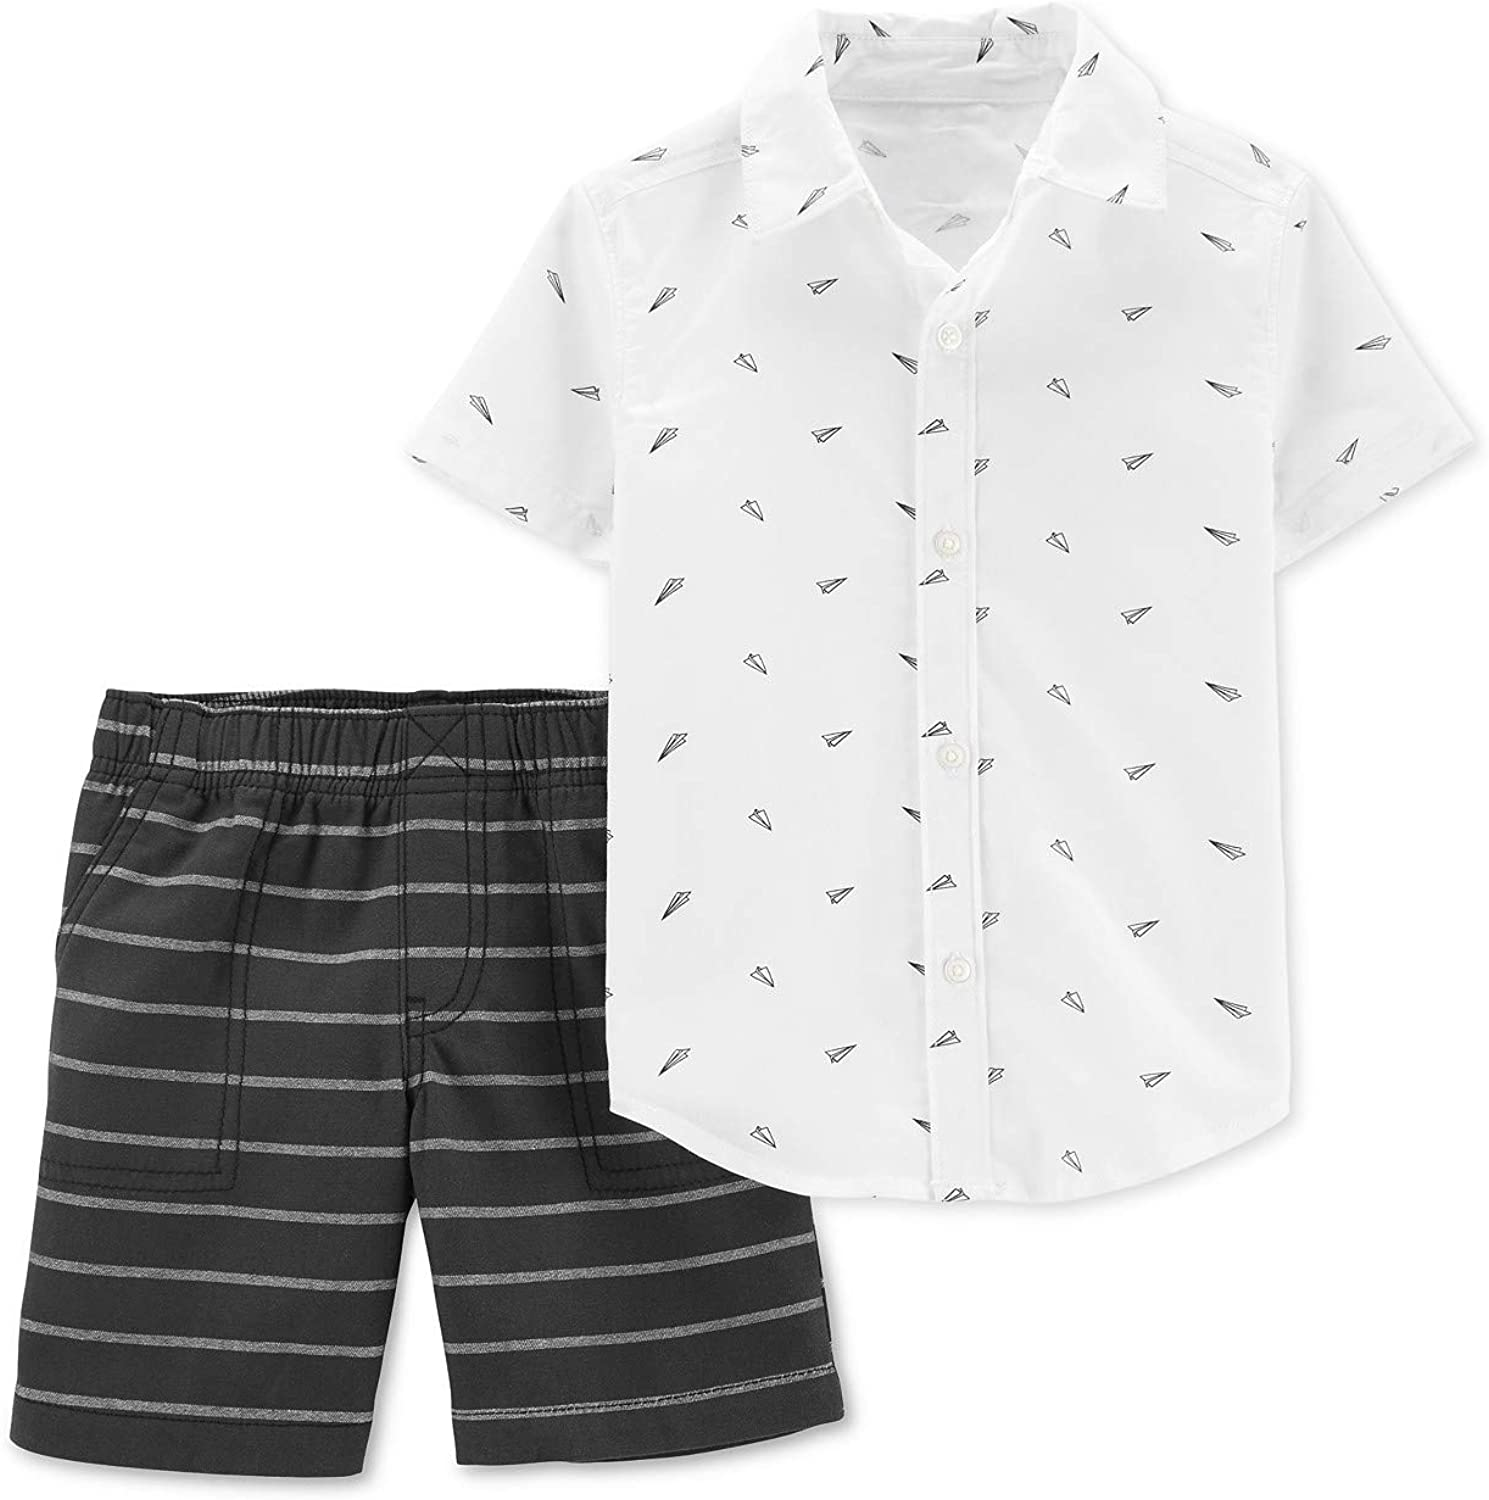 Carters 2-Piece Paper Airplane Button-Front Top /& Striped Short Set 18 Months Black and White